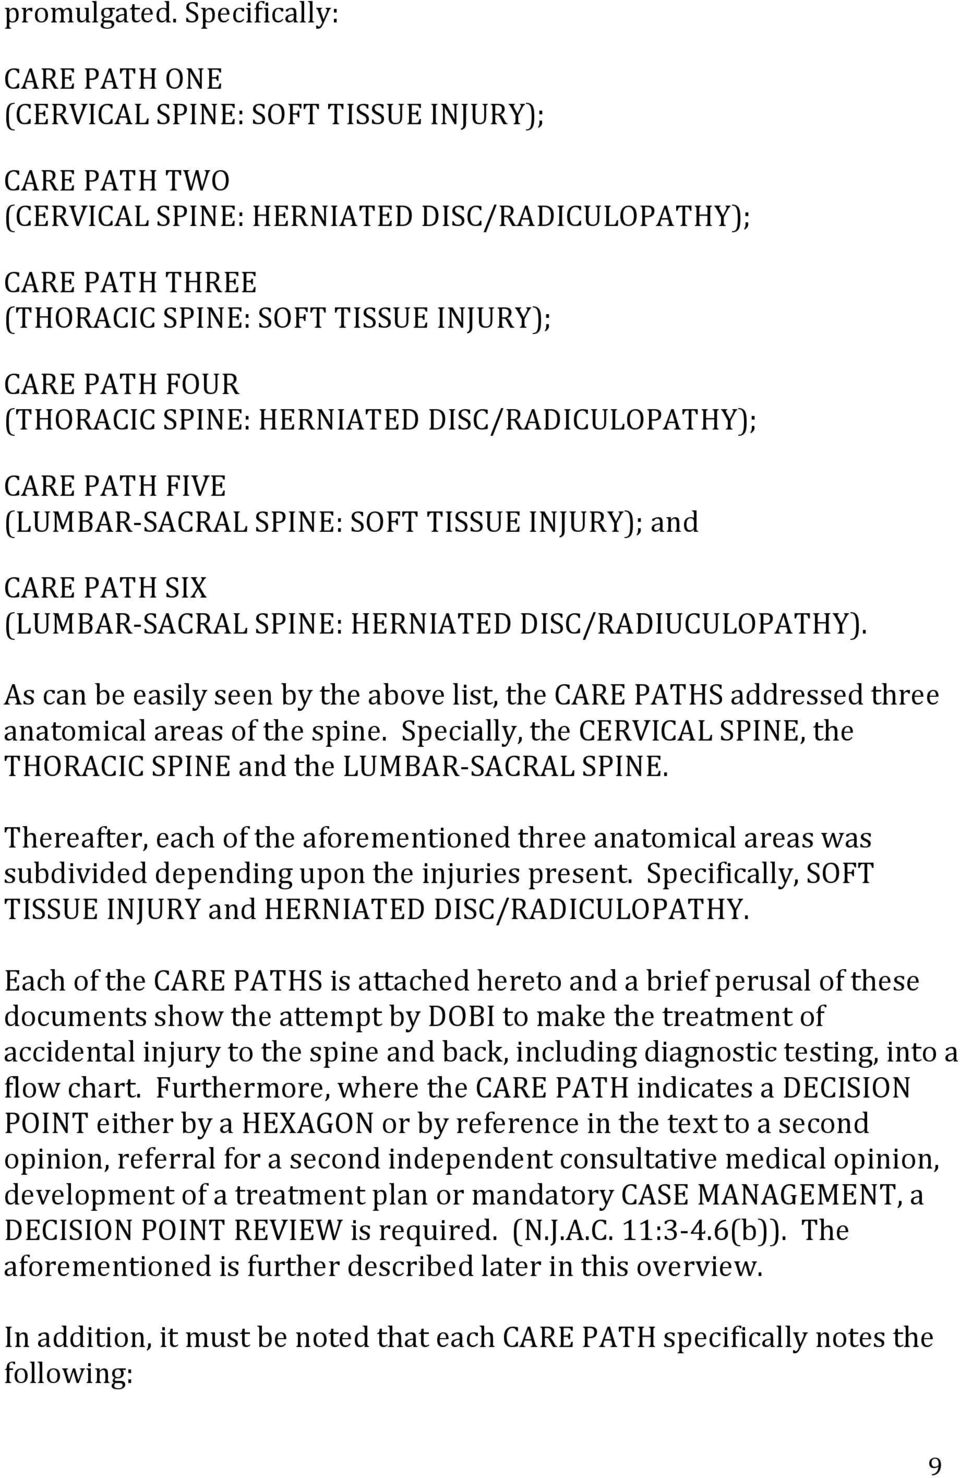 (THORACIC SPINE: HERNIATED DISC/RADICULOPATHY); CARE PATH FIVE (LUMBAR- SACRAL SPINE: SOFT TISSUE INJURY); and CARE PATH SIX (LUMBAR- SACRAL SPINE: HERNIATED DISC/RADIUCULOPATHY).